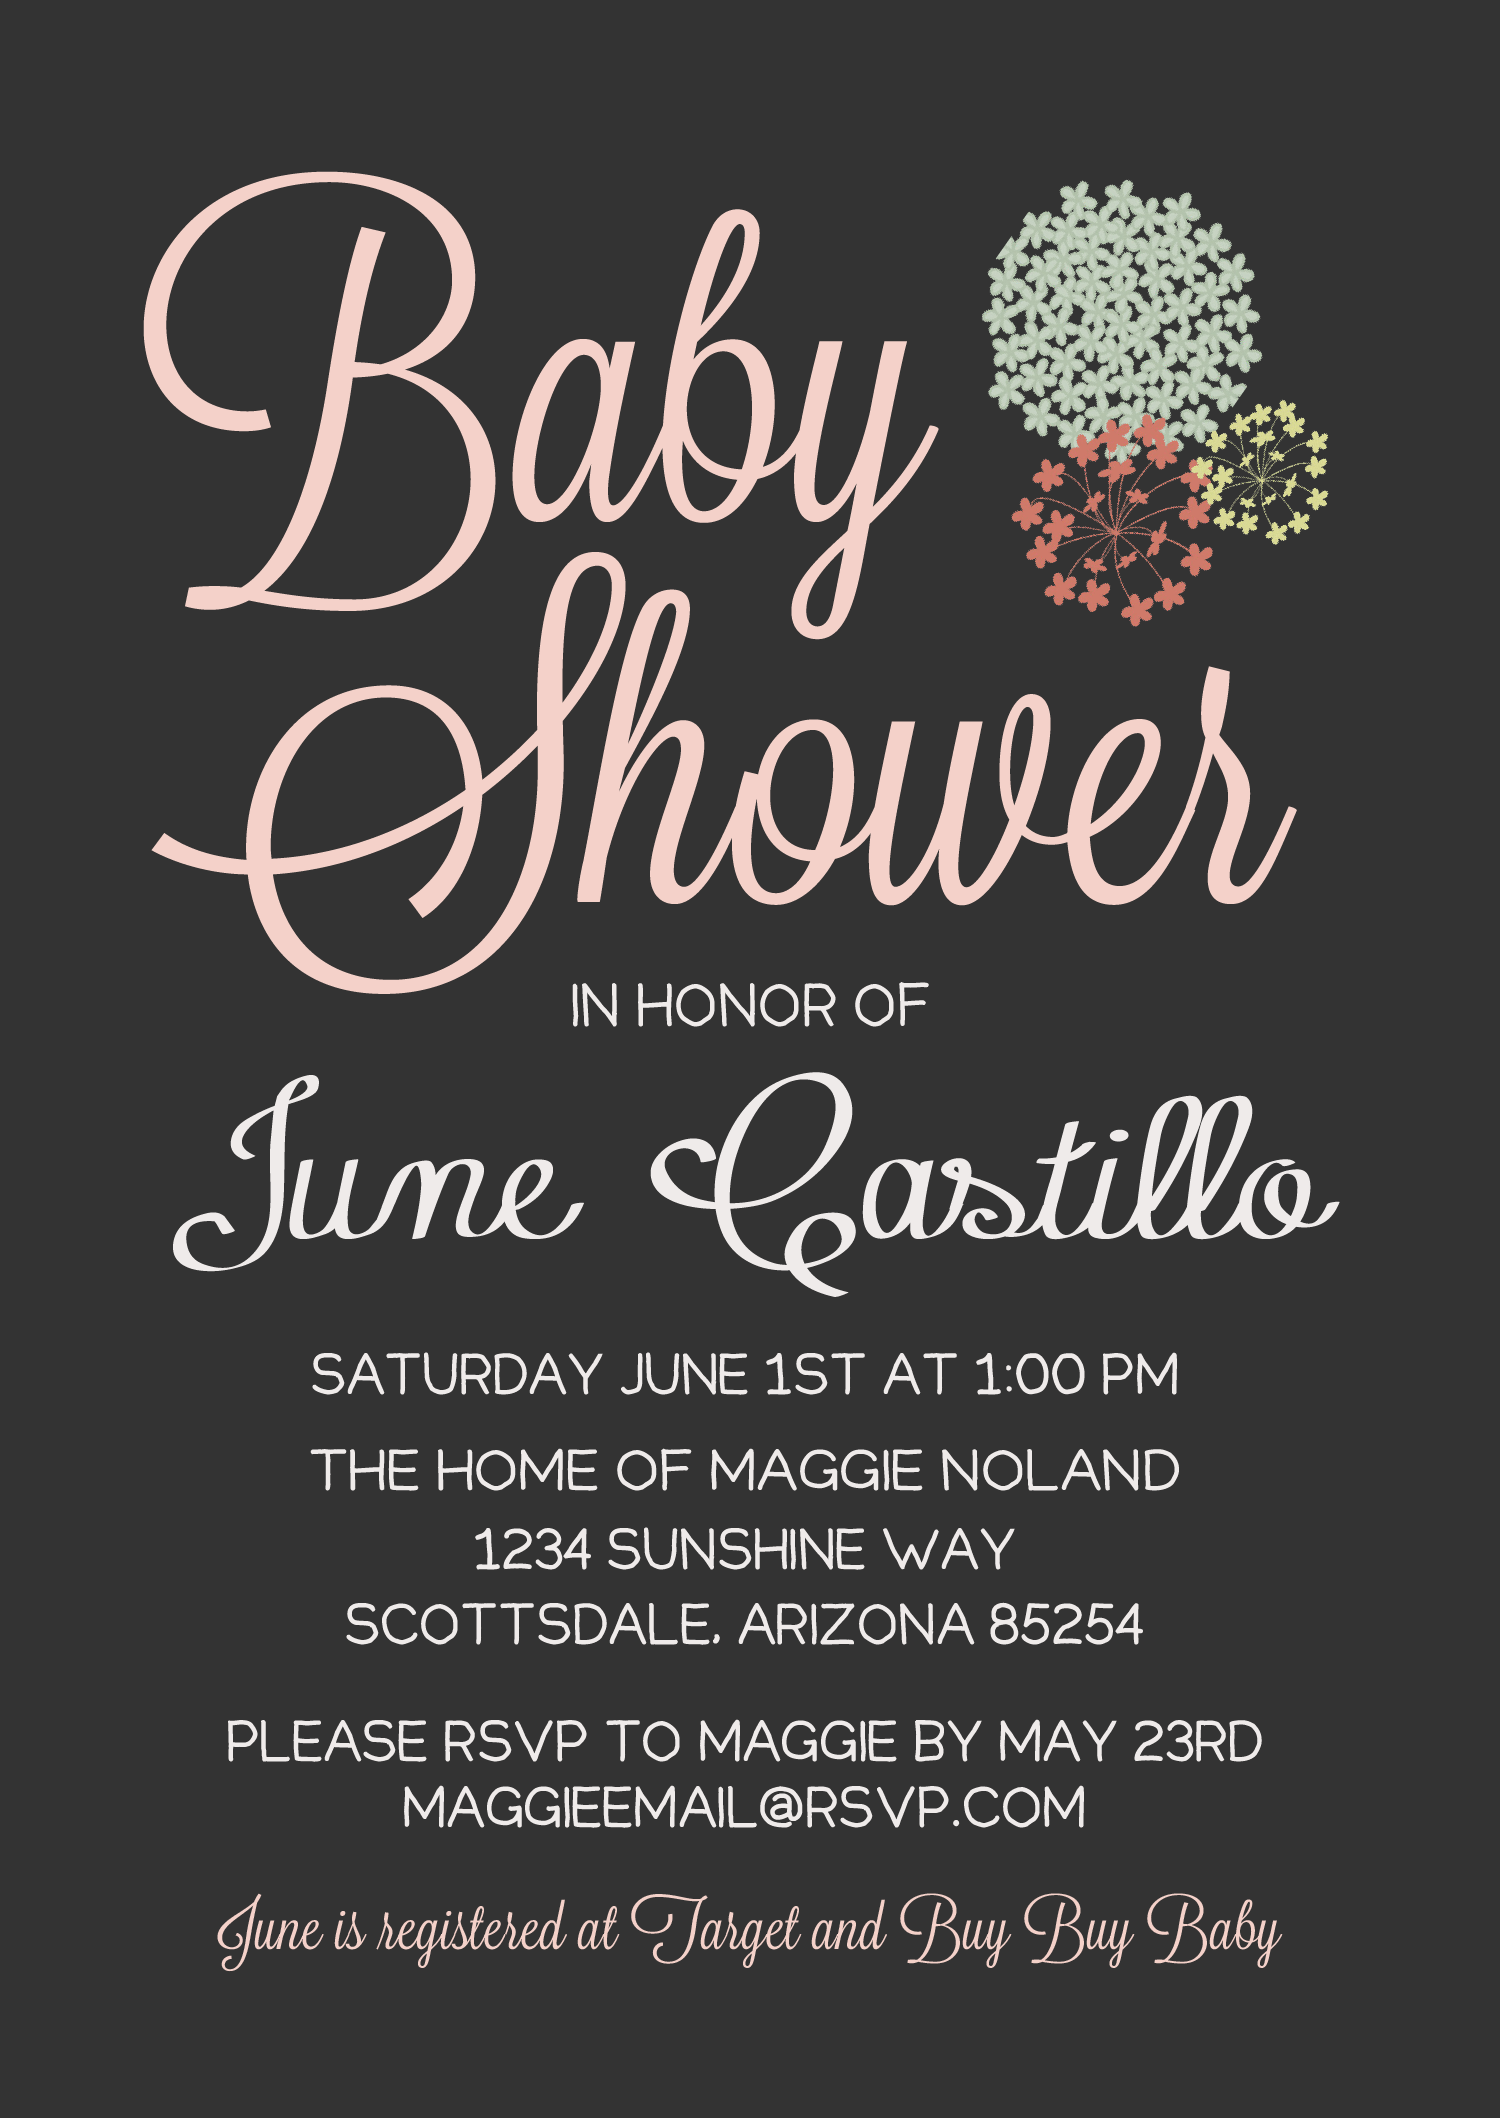 Instead of Baby shower it could be Bridal shower